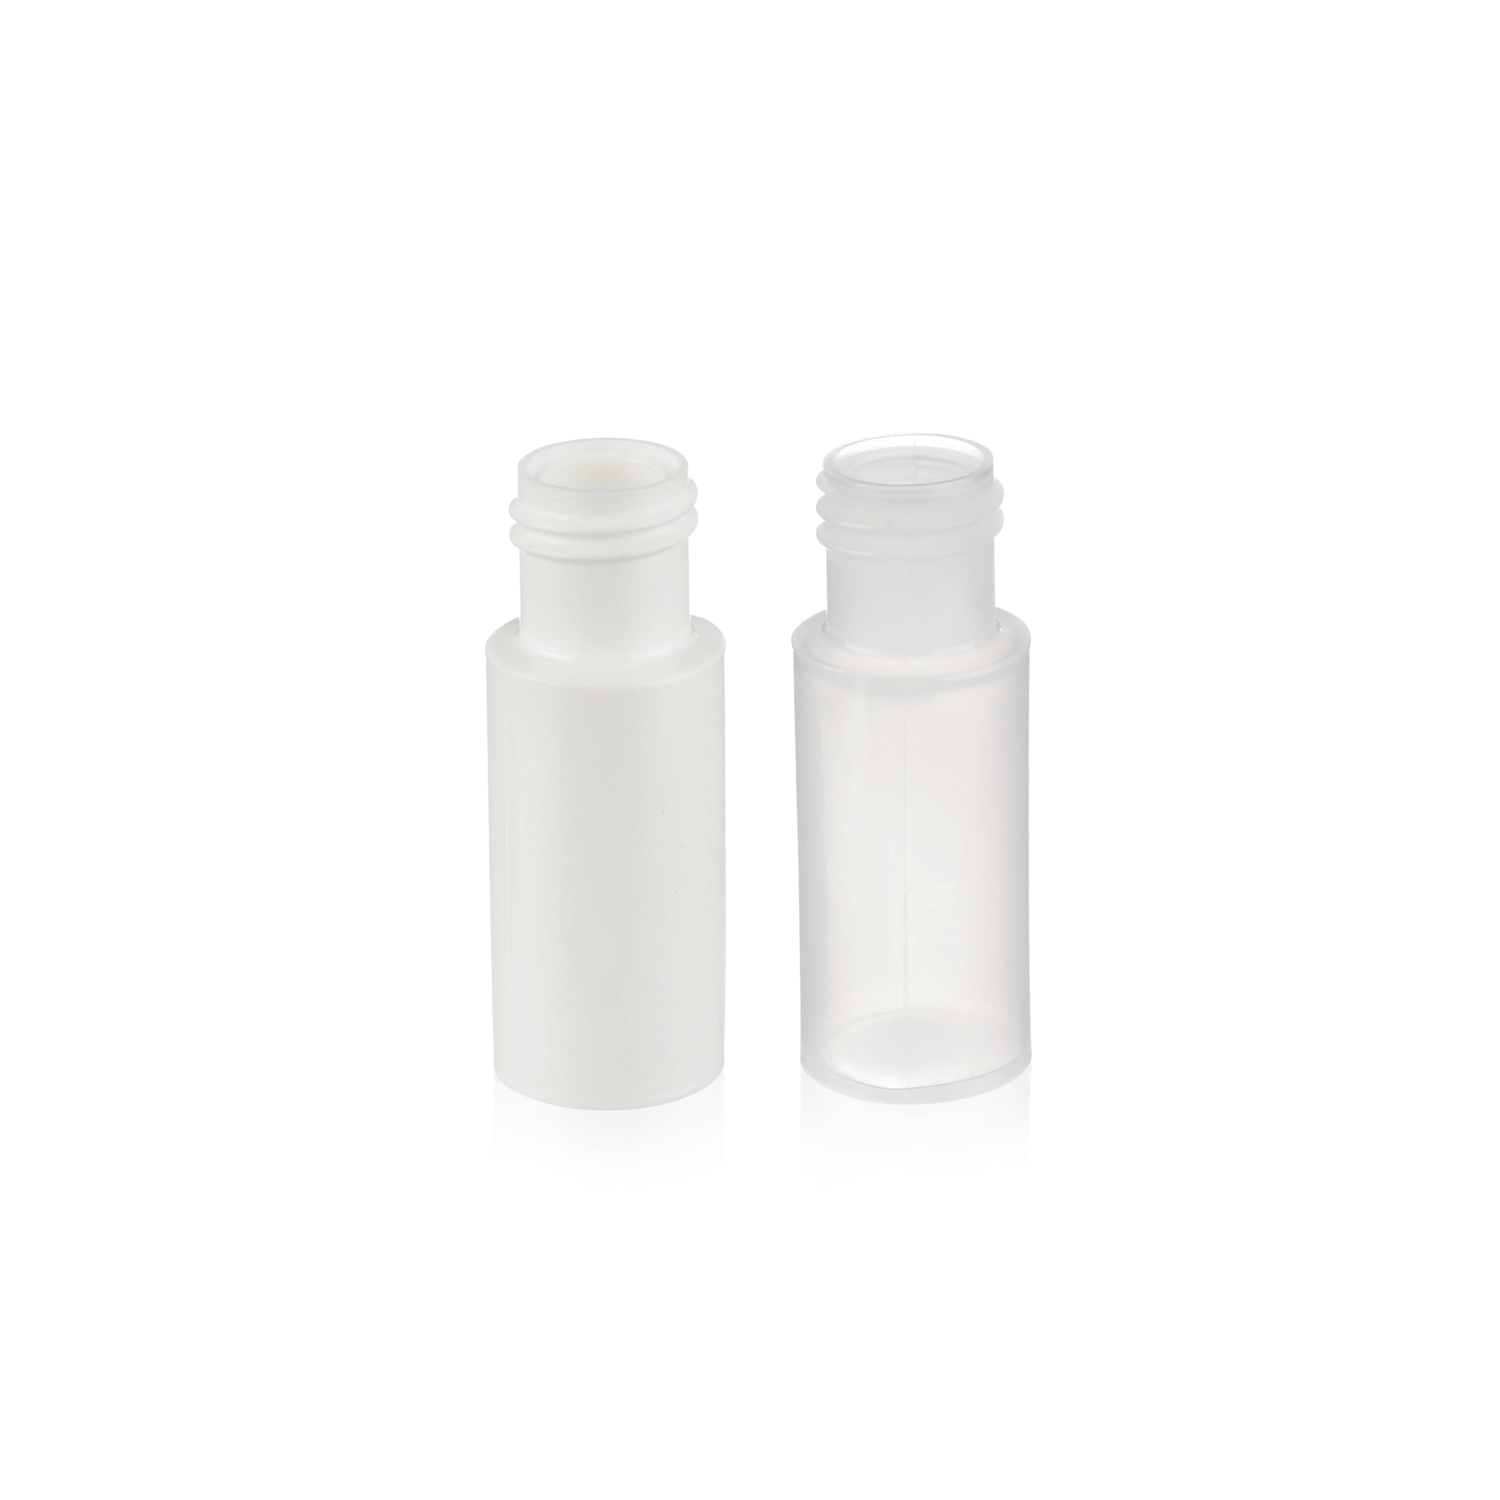 WHEATON® Plastic Dropping Bottle, 7mL, Natural, Case of 100